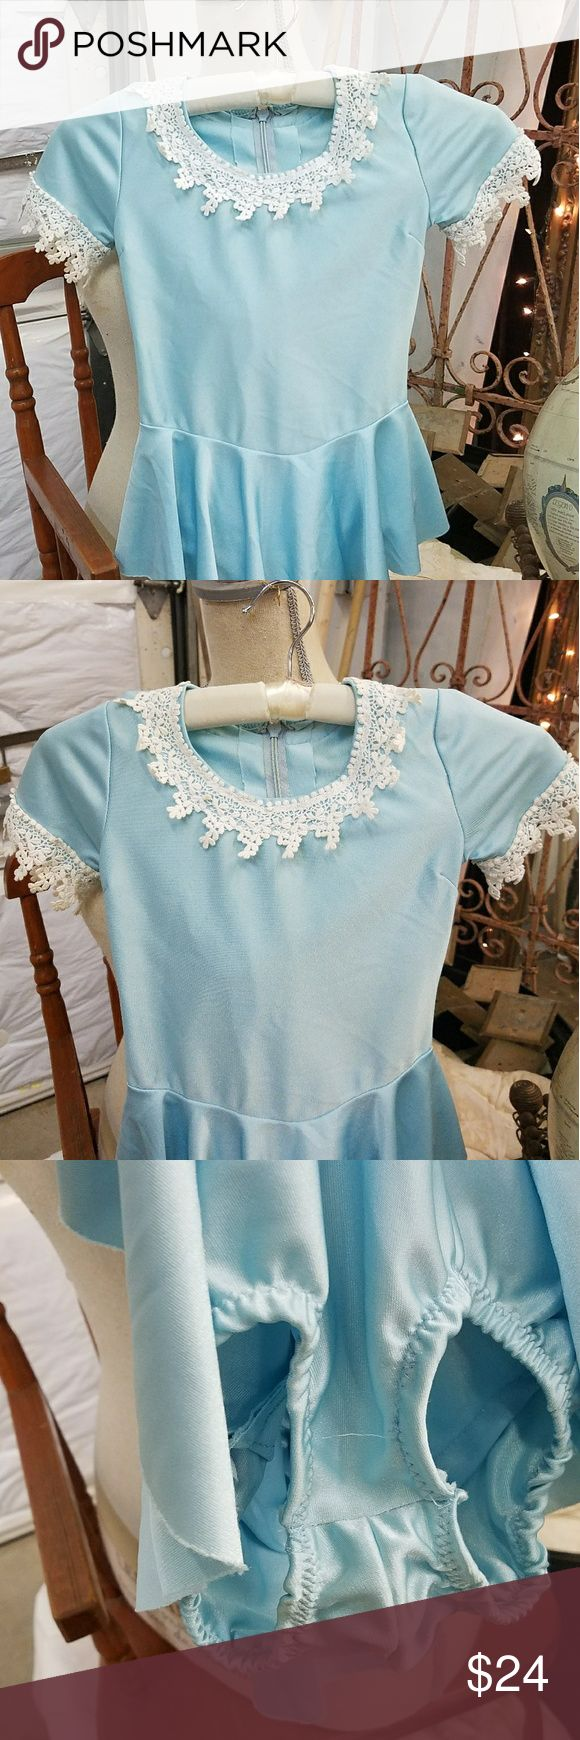 Vintage girls ice skating costume So cute!!  This is an amazing vintage ice skating costume with gorgeous lace trim.  Other than 2 very small brown spots on the lace it's in amazing condition!!  No size tag but I would put it at around a 6x.  I will be happy to take full measurements if interested. Costumes Theater